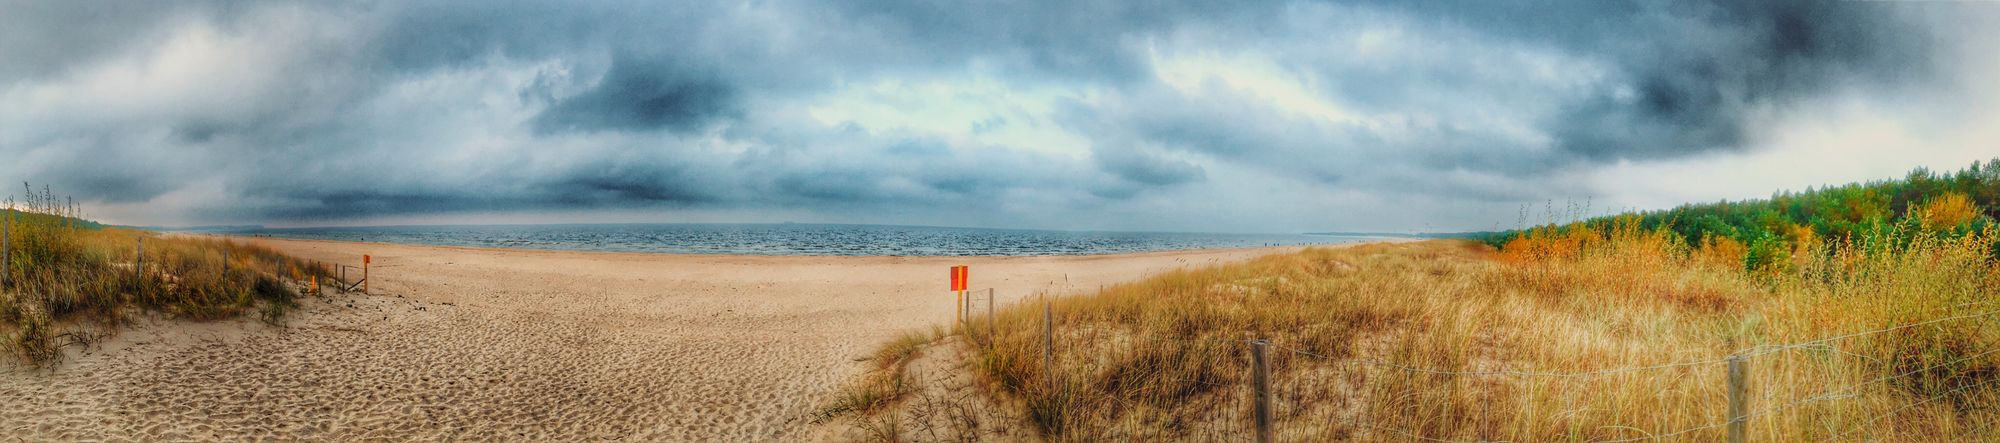 Panorama Misdroy-poland Beach Sea Sand Nature Nature_collection Luxxxs Hanging Out From My Point Of View Photography Scenics Marram Grass Tranquility Cloud - Sky Tranquil Scene Outdoors Sky Water Horizon Over Water Growth No People Sand Dune EyeEm Nature Lover Grass